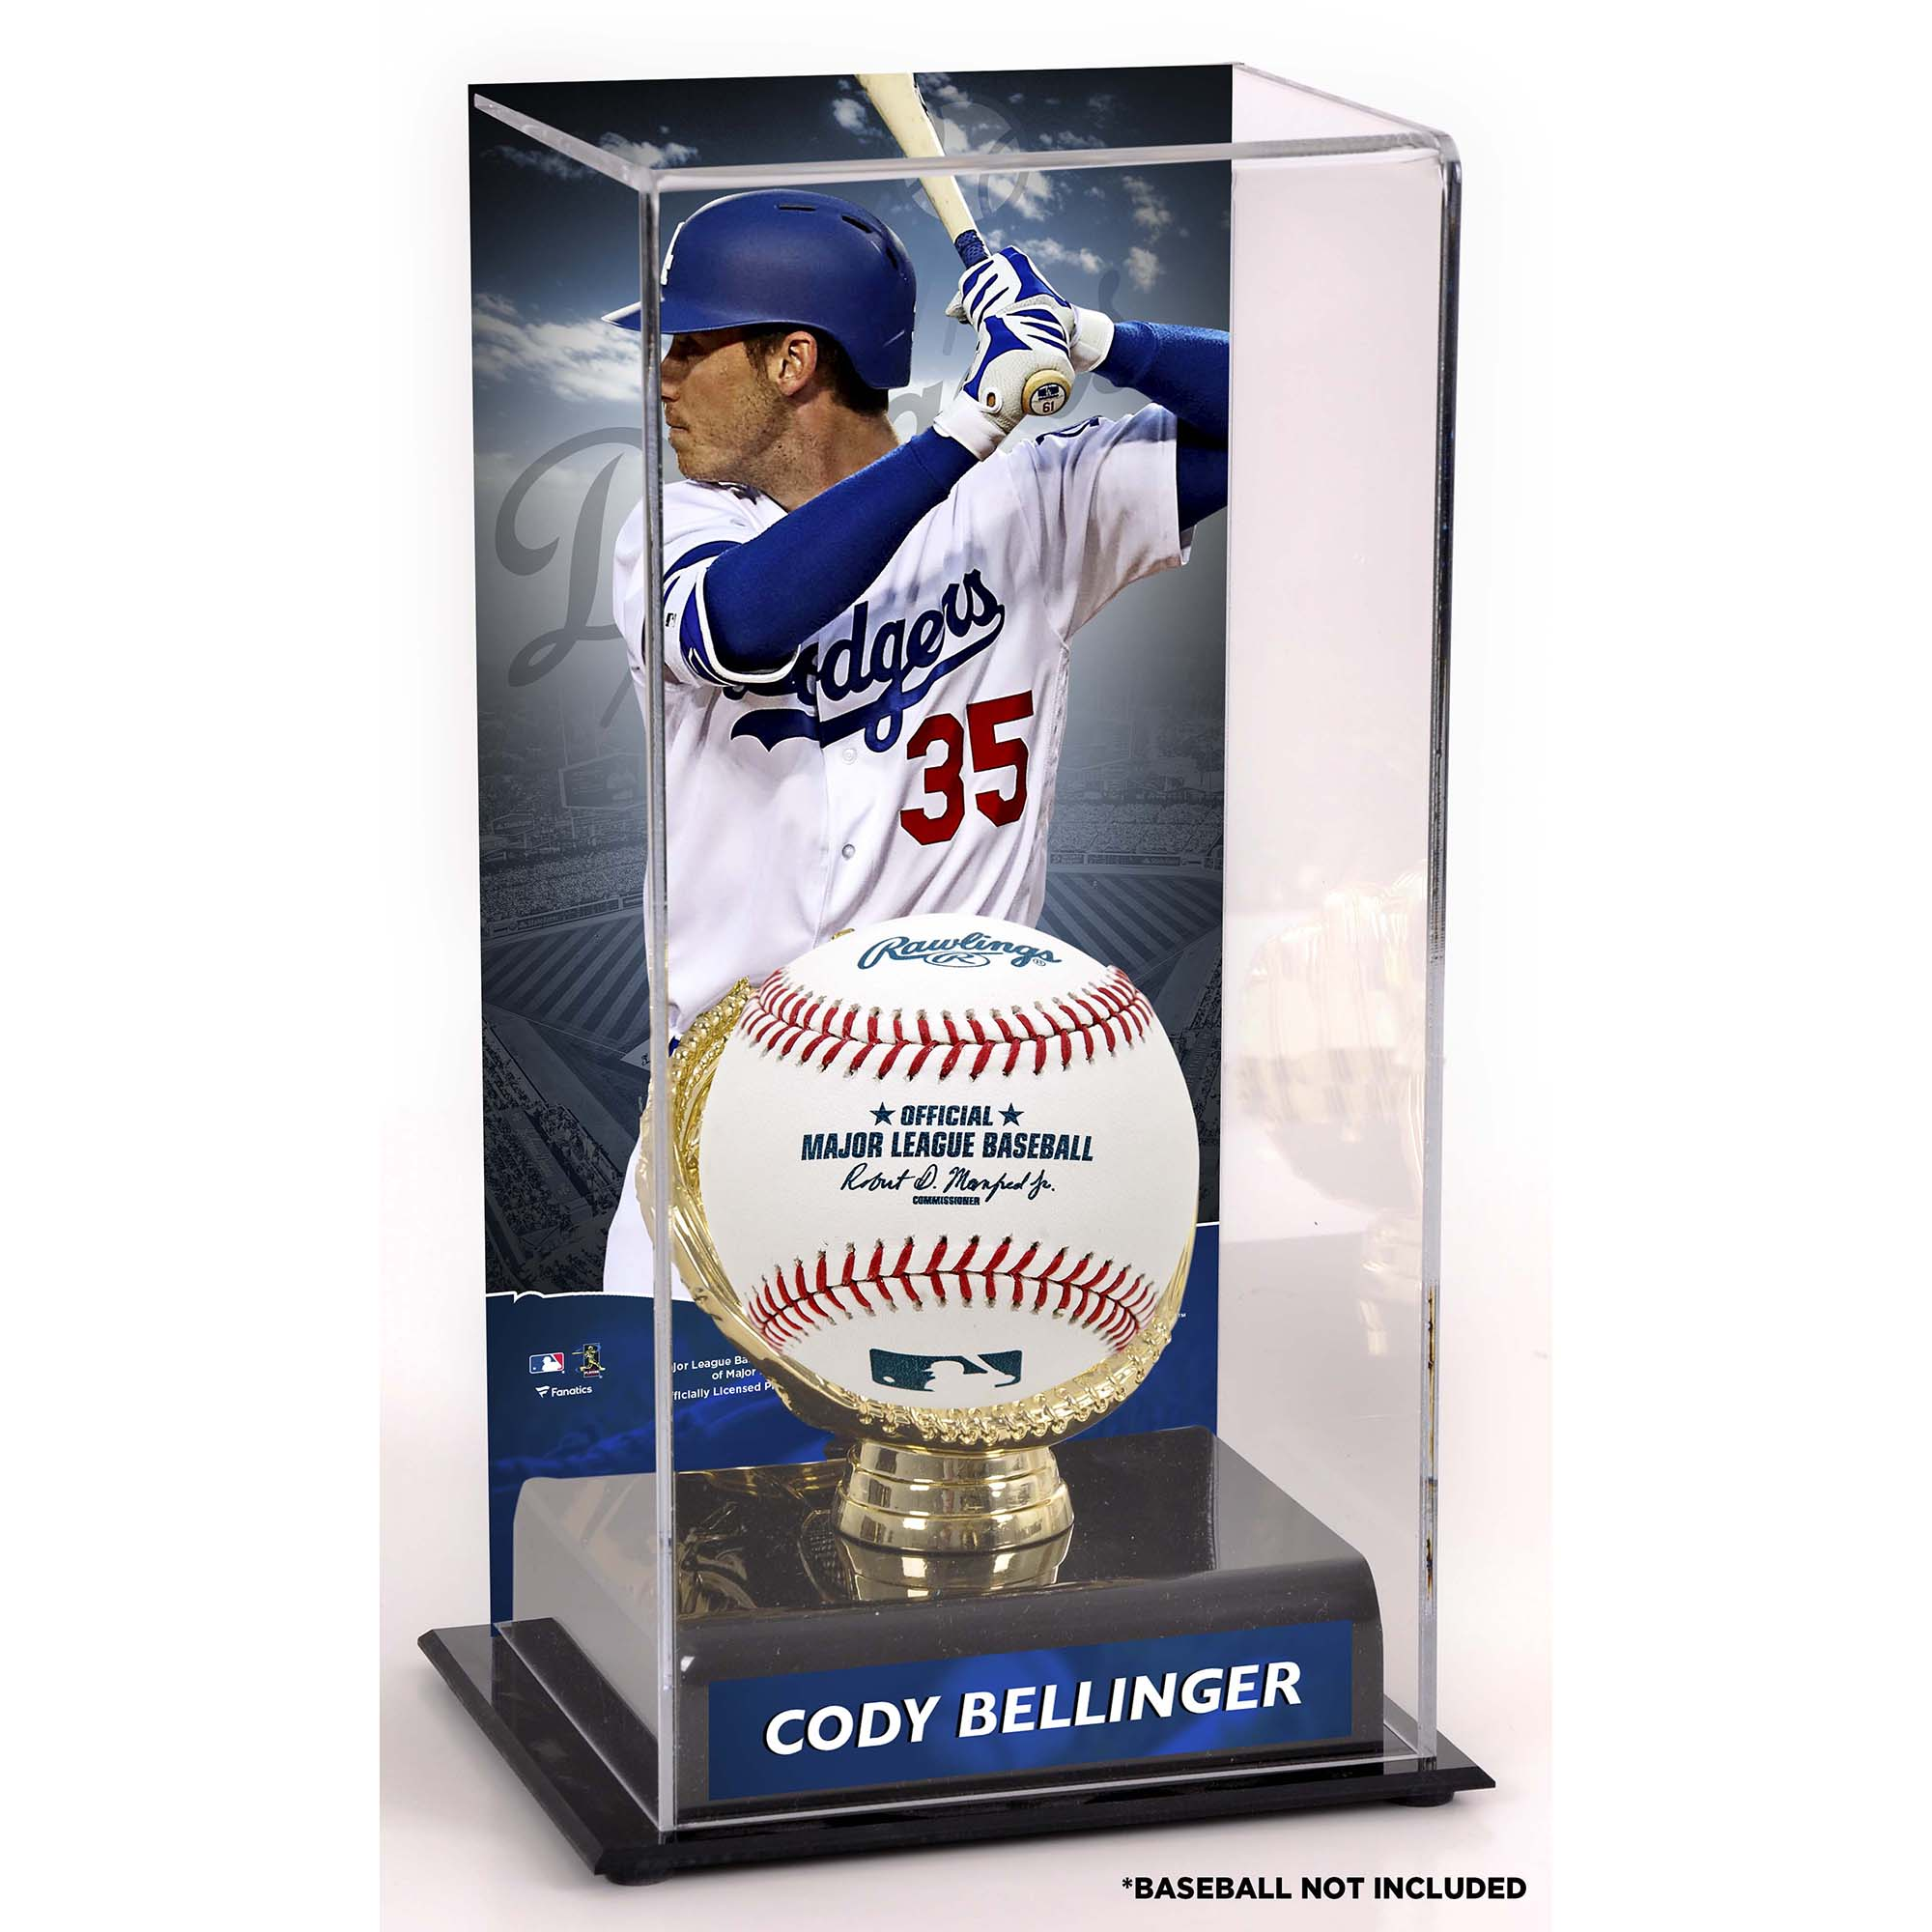 Cody Bellinger Los Angeles Dodgers Fanatics Authentic Sublimated Display Case with Gold Glove Holder - No Size